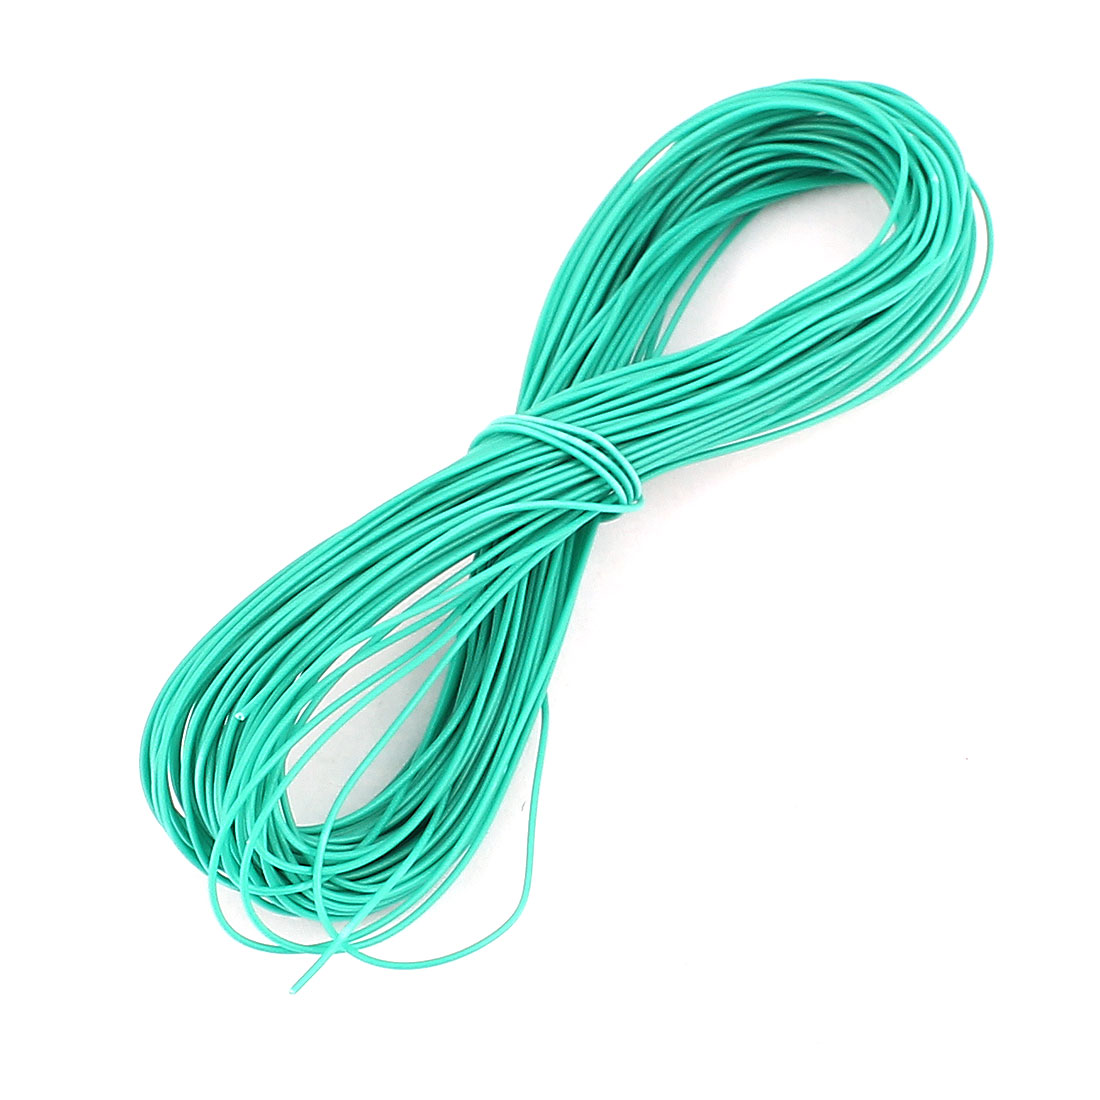 10m 33Ft 30AWG 0.65mm Hi-Temp High Tempreture PTFE Wrap Cable Wire Cord Green